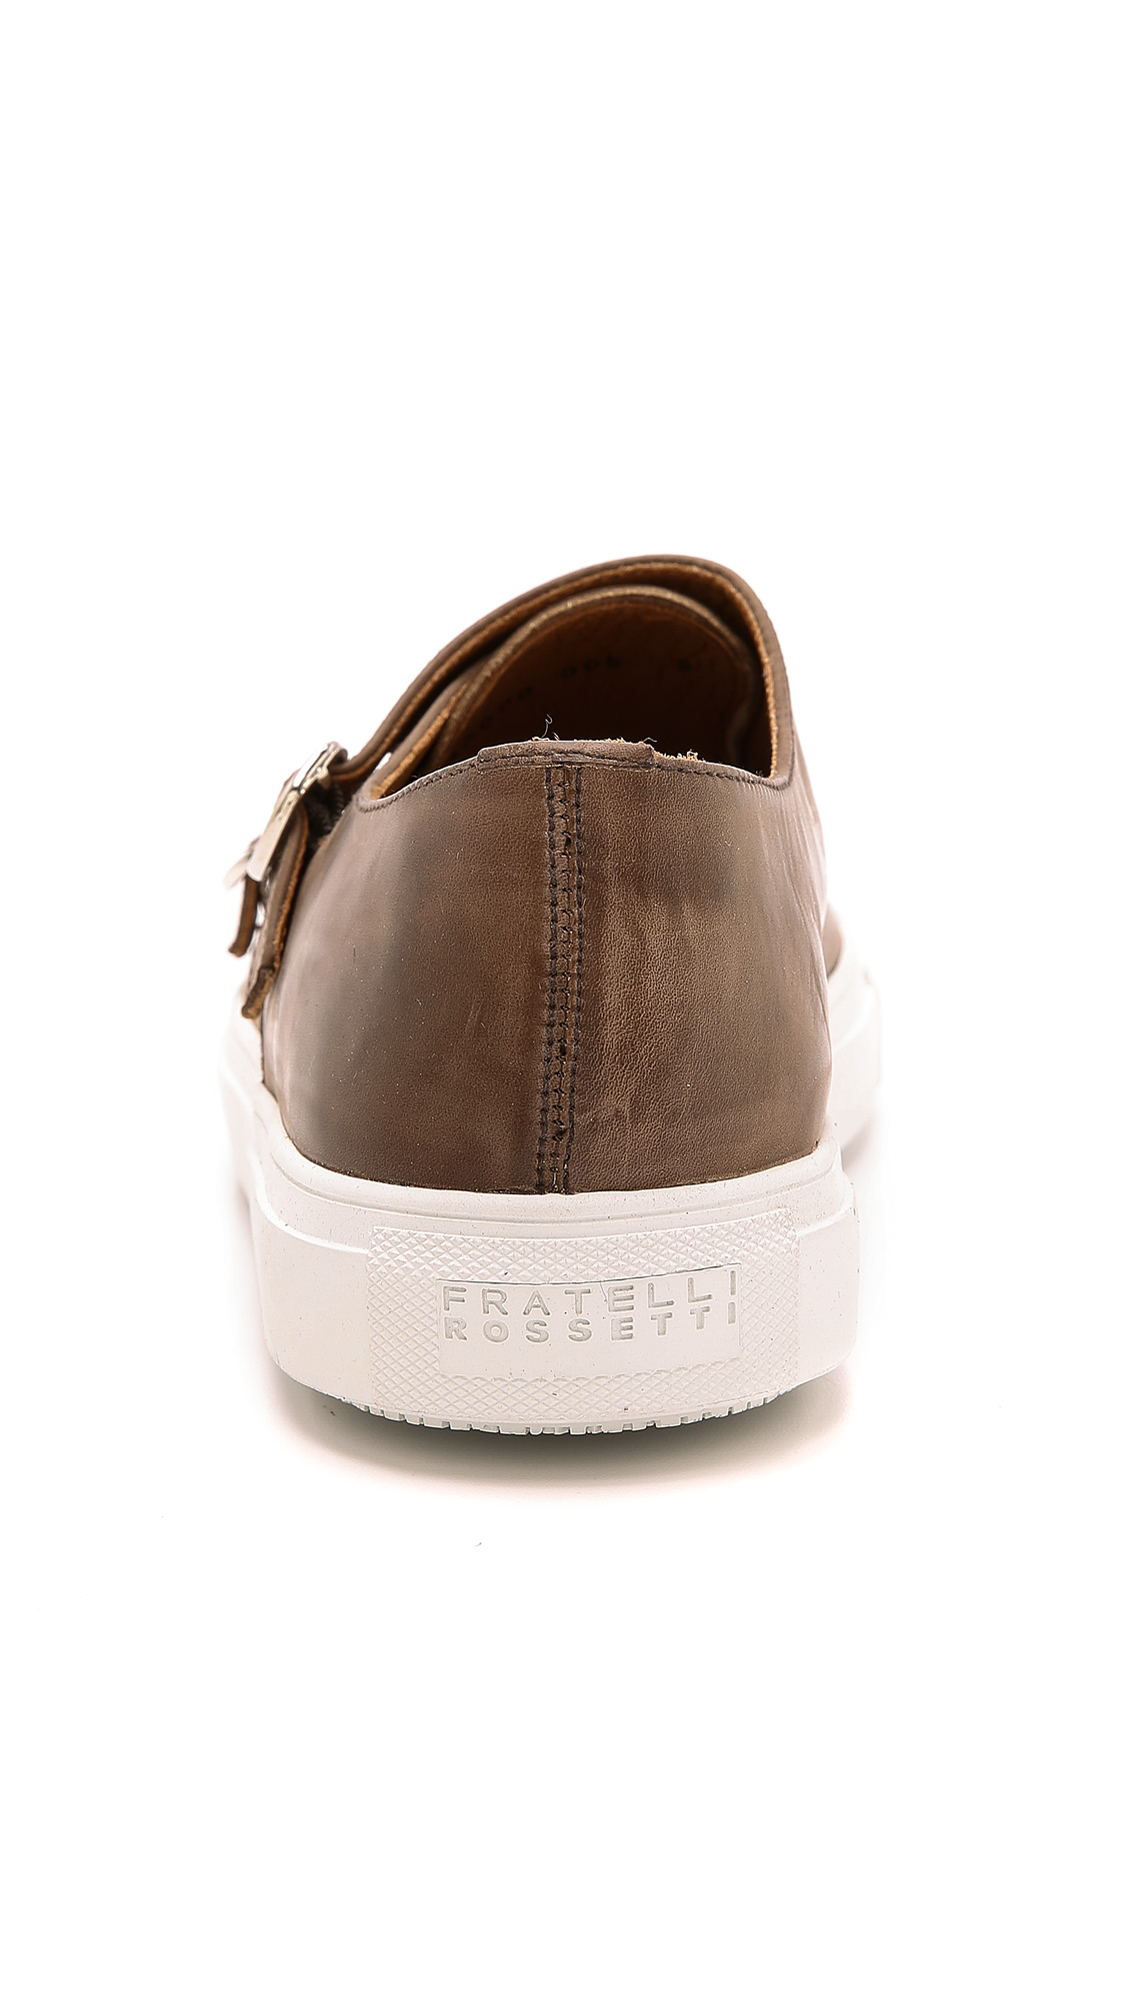 Fratelli Rossetti Double Monk Sport Loafers in Brown for Men